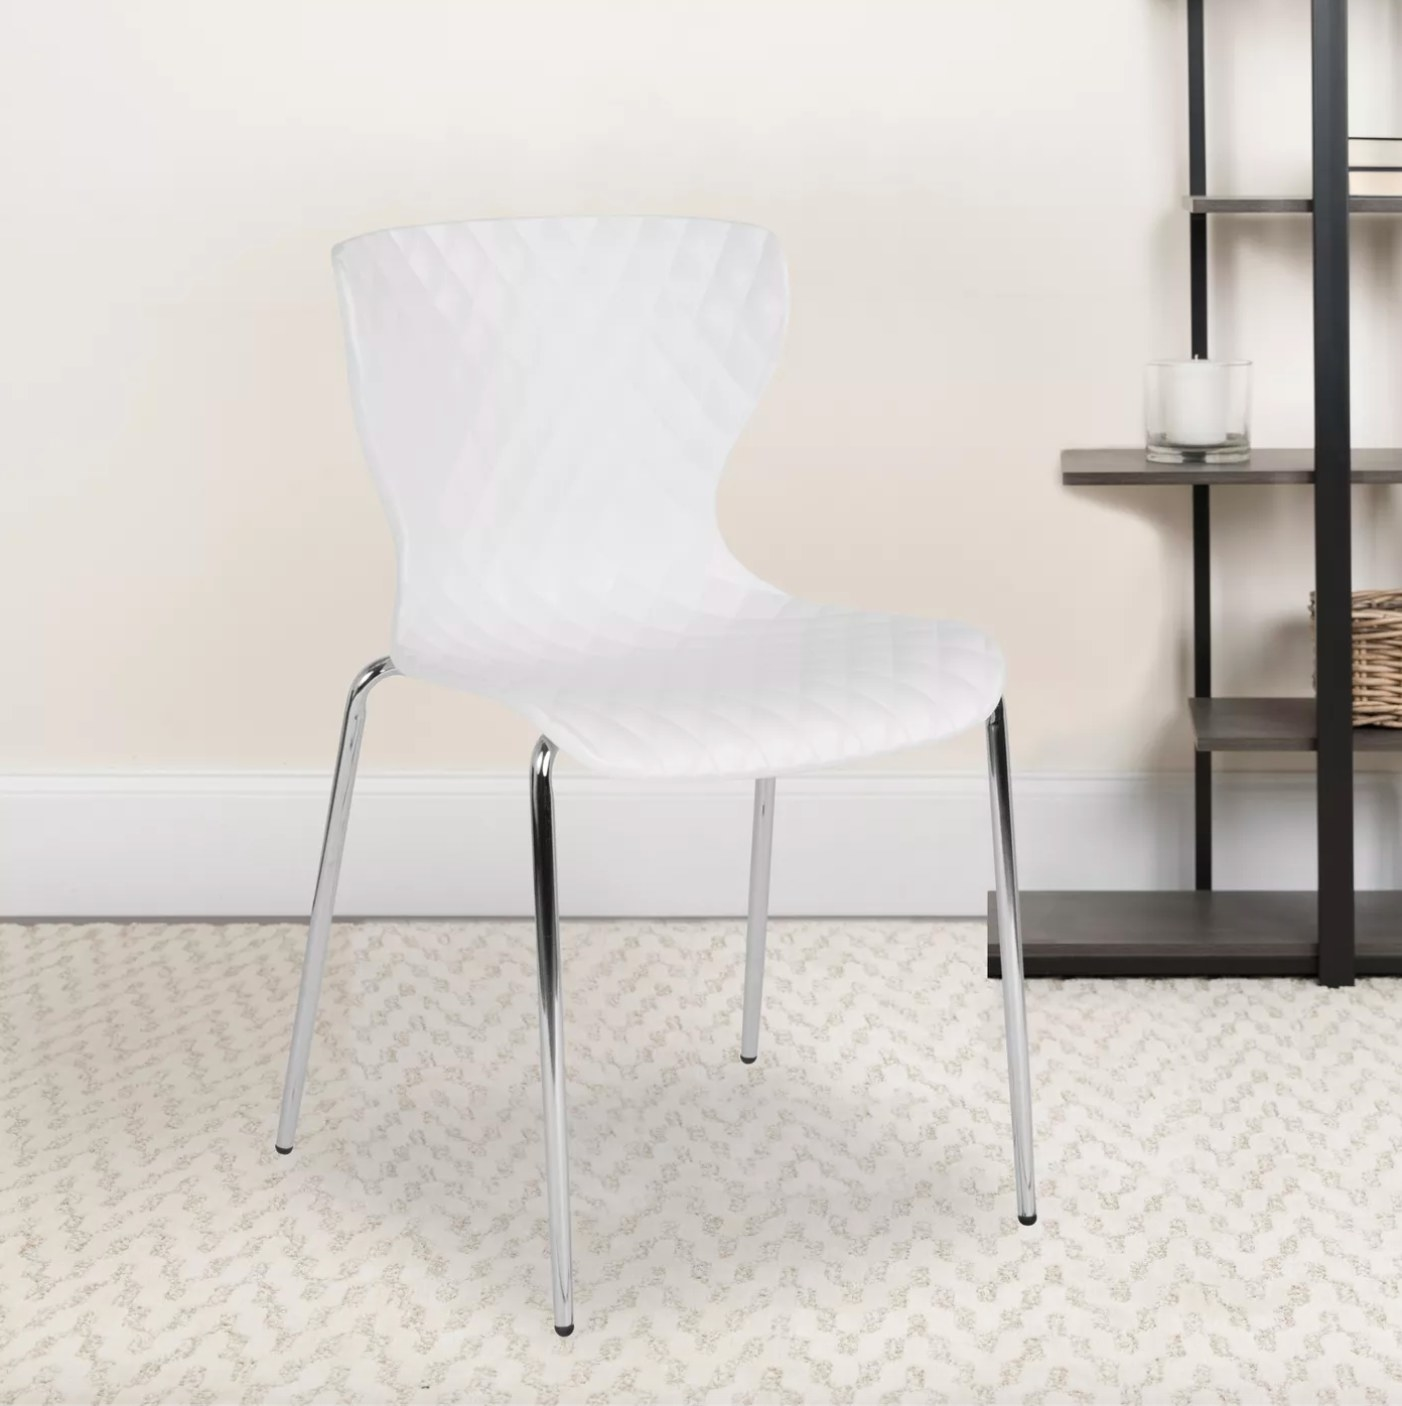 The plastic stacking chair in white